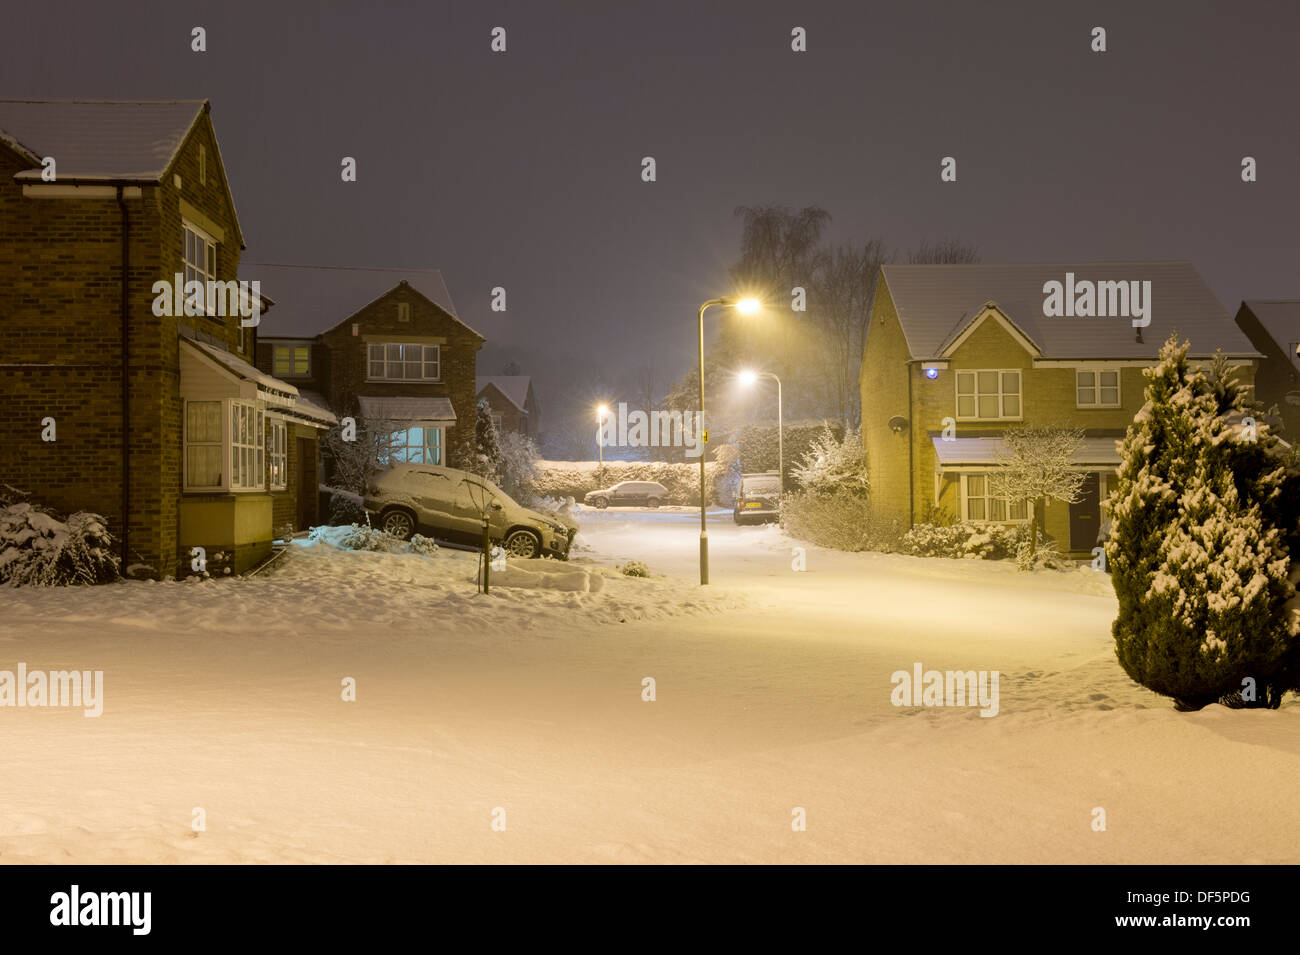 Starburst light from steet lamps at nighttime illuminate private modern houses in cold, snow covered cul-de-sac Stock Photo